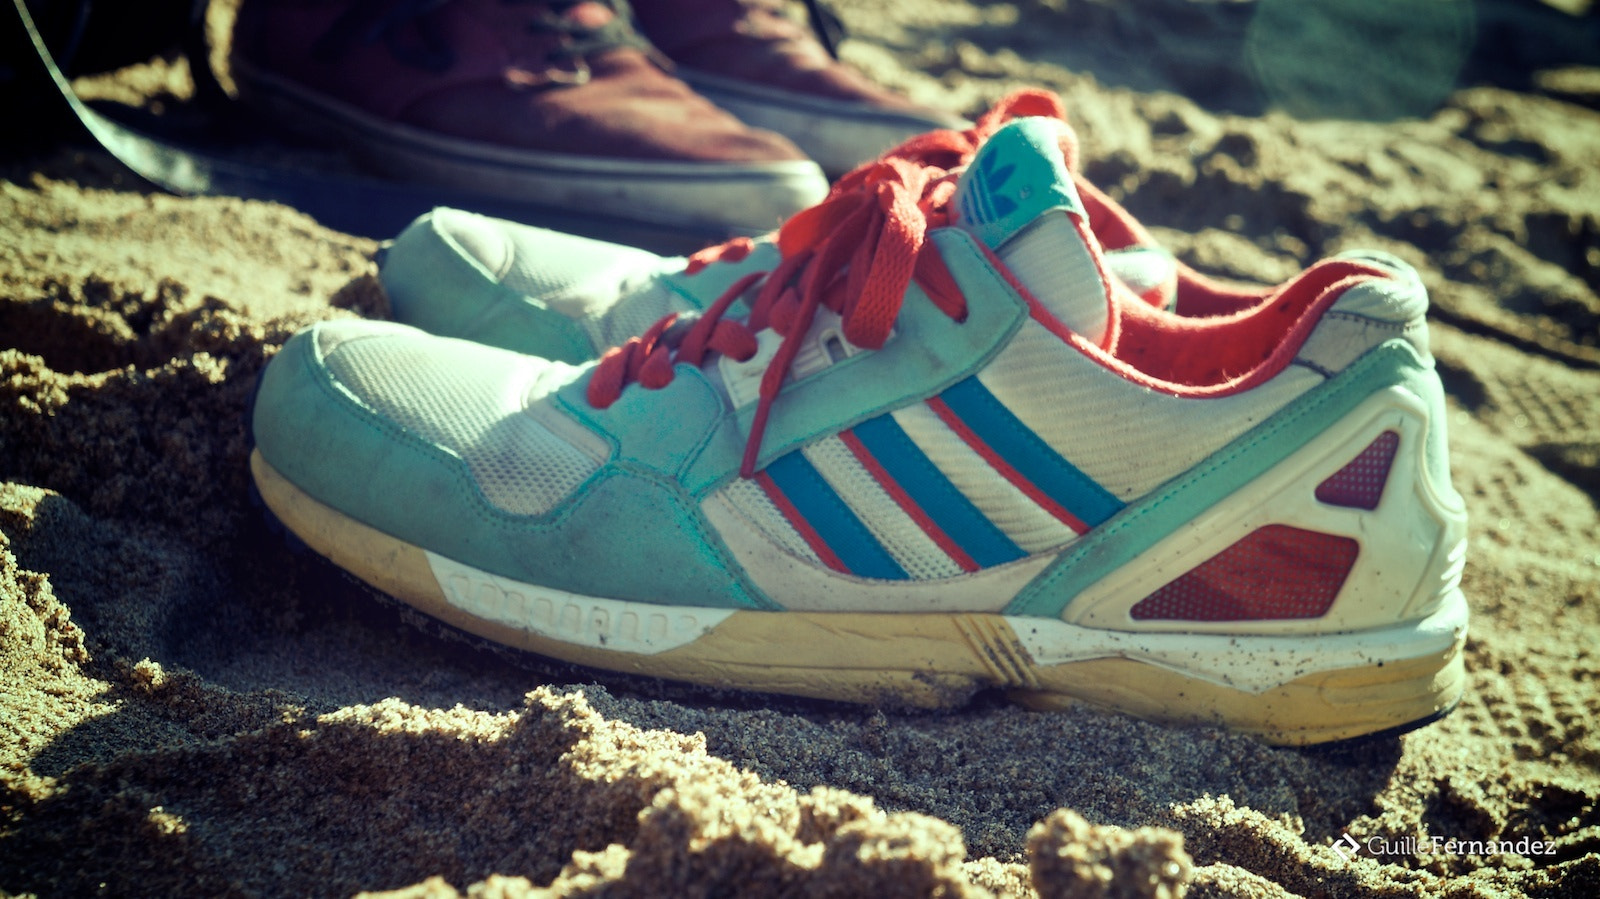 Photograph Vintage Sneaker by Guillermo Fernandez Brombley on 500px